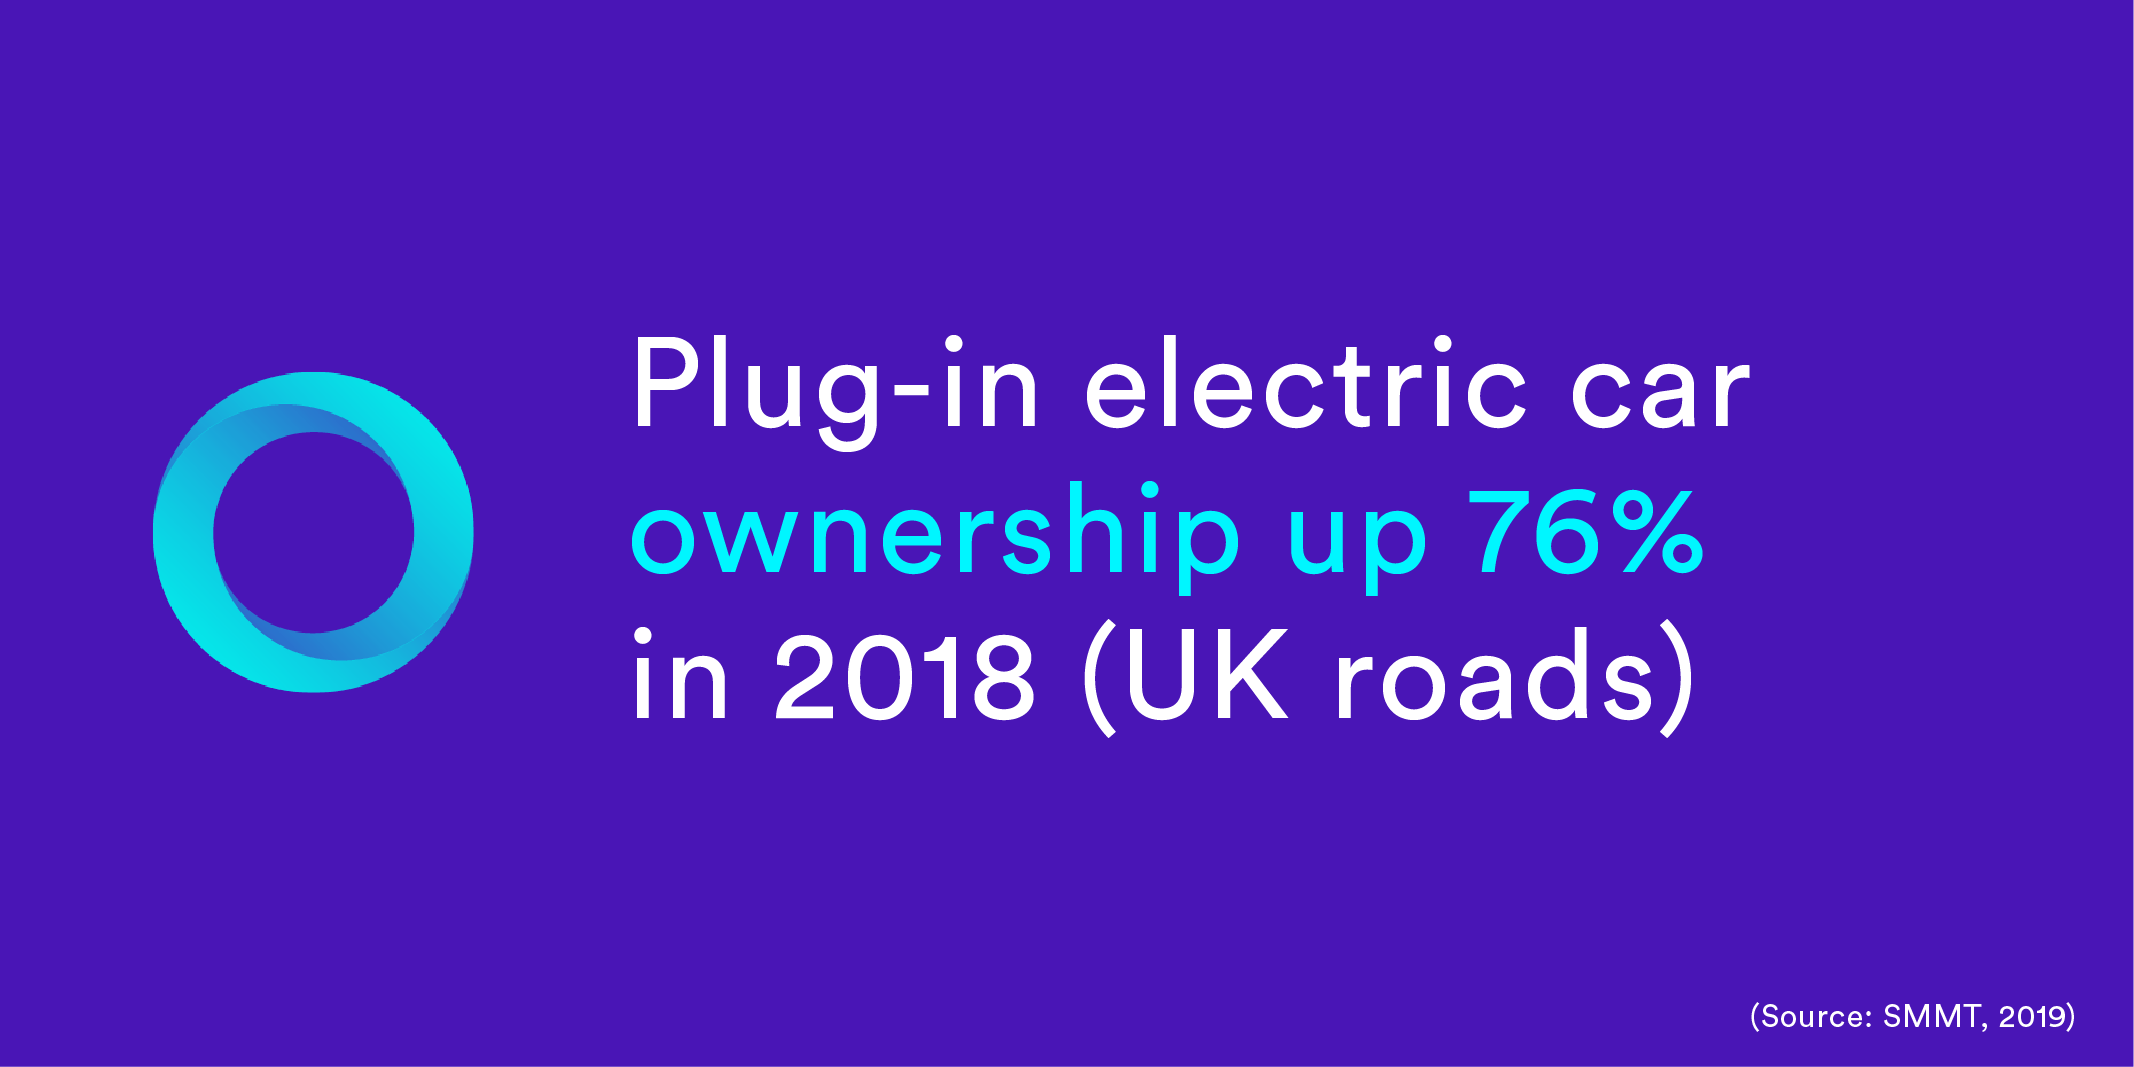 Plug-in electric car ownership up 76%